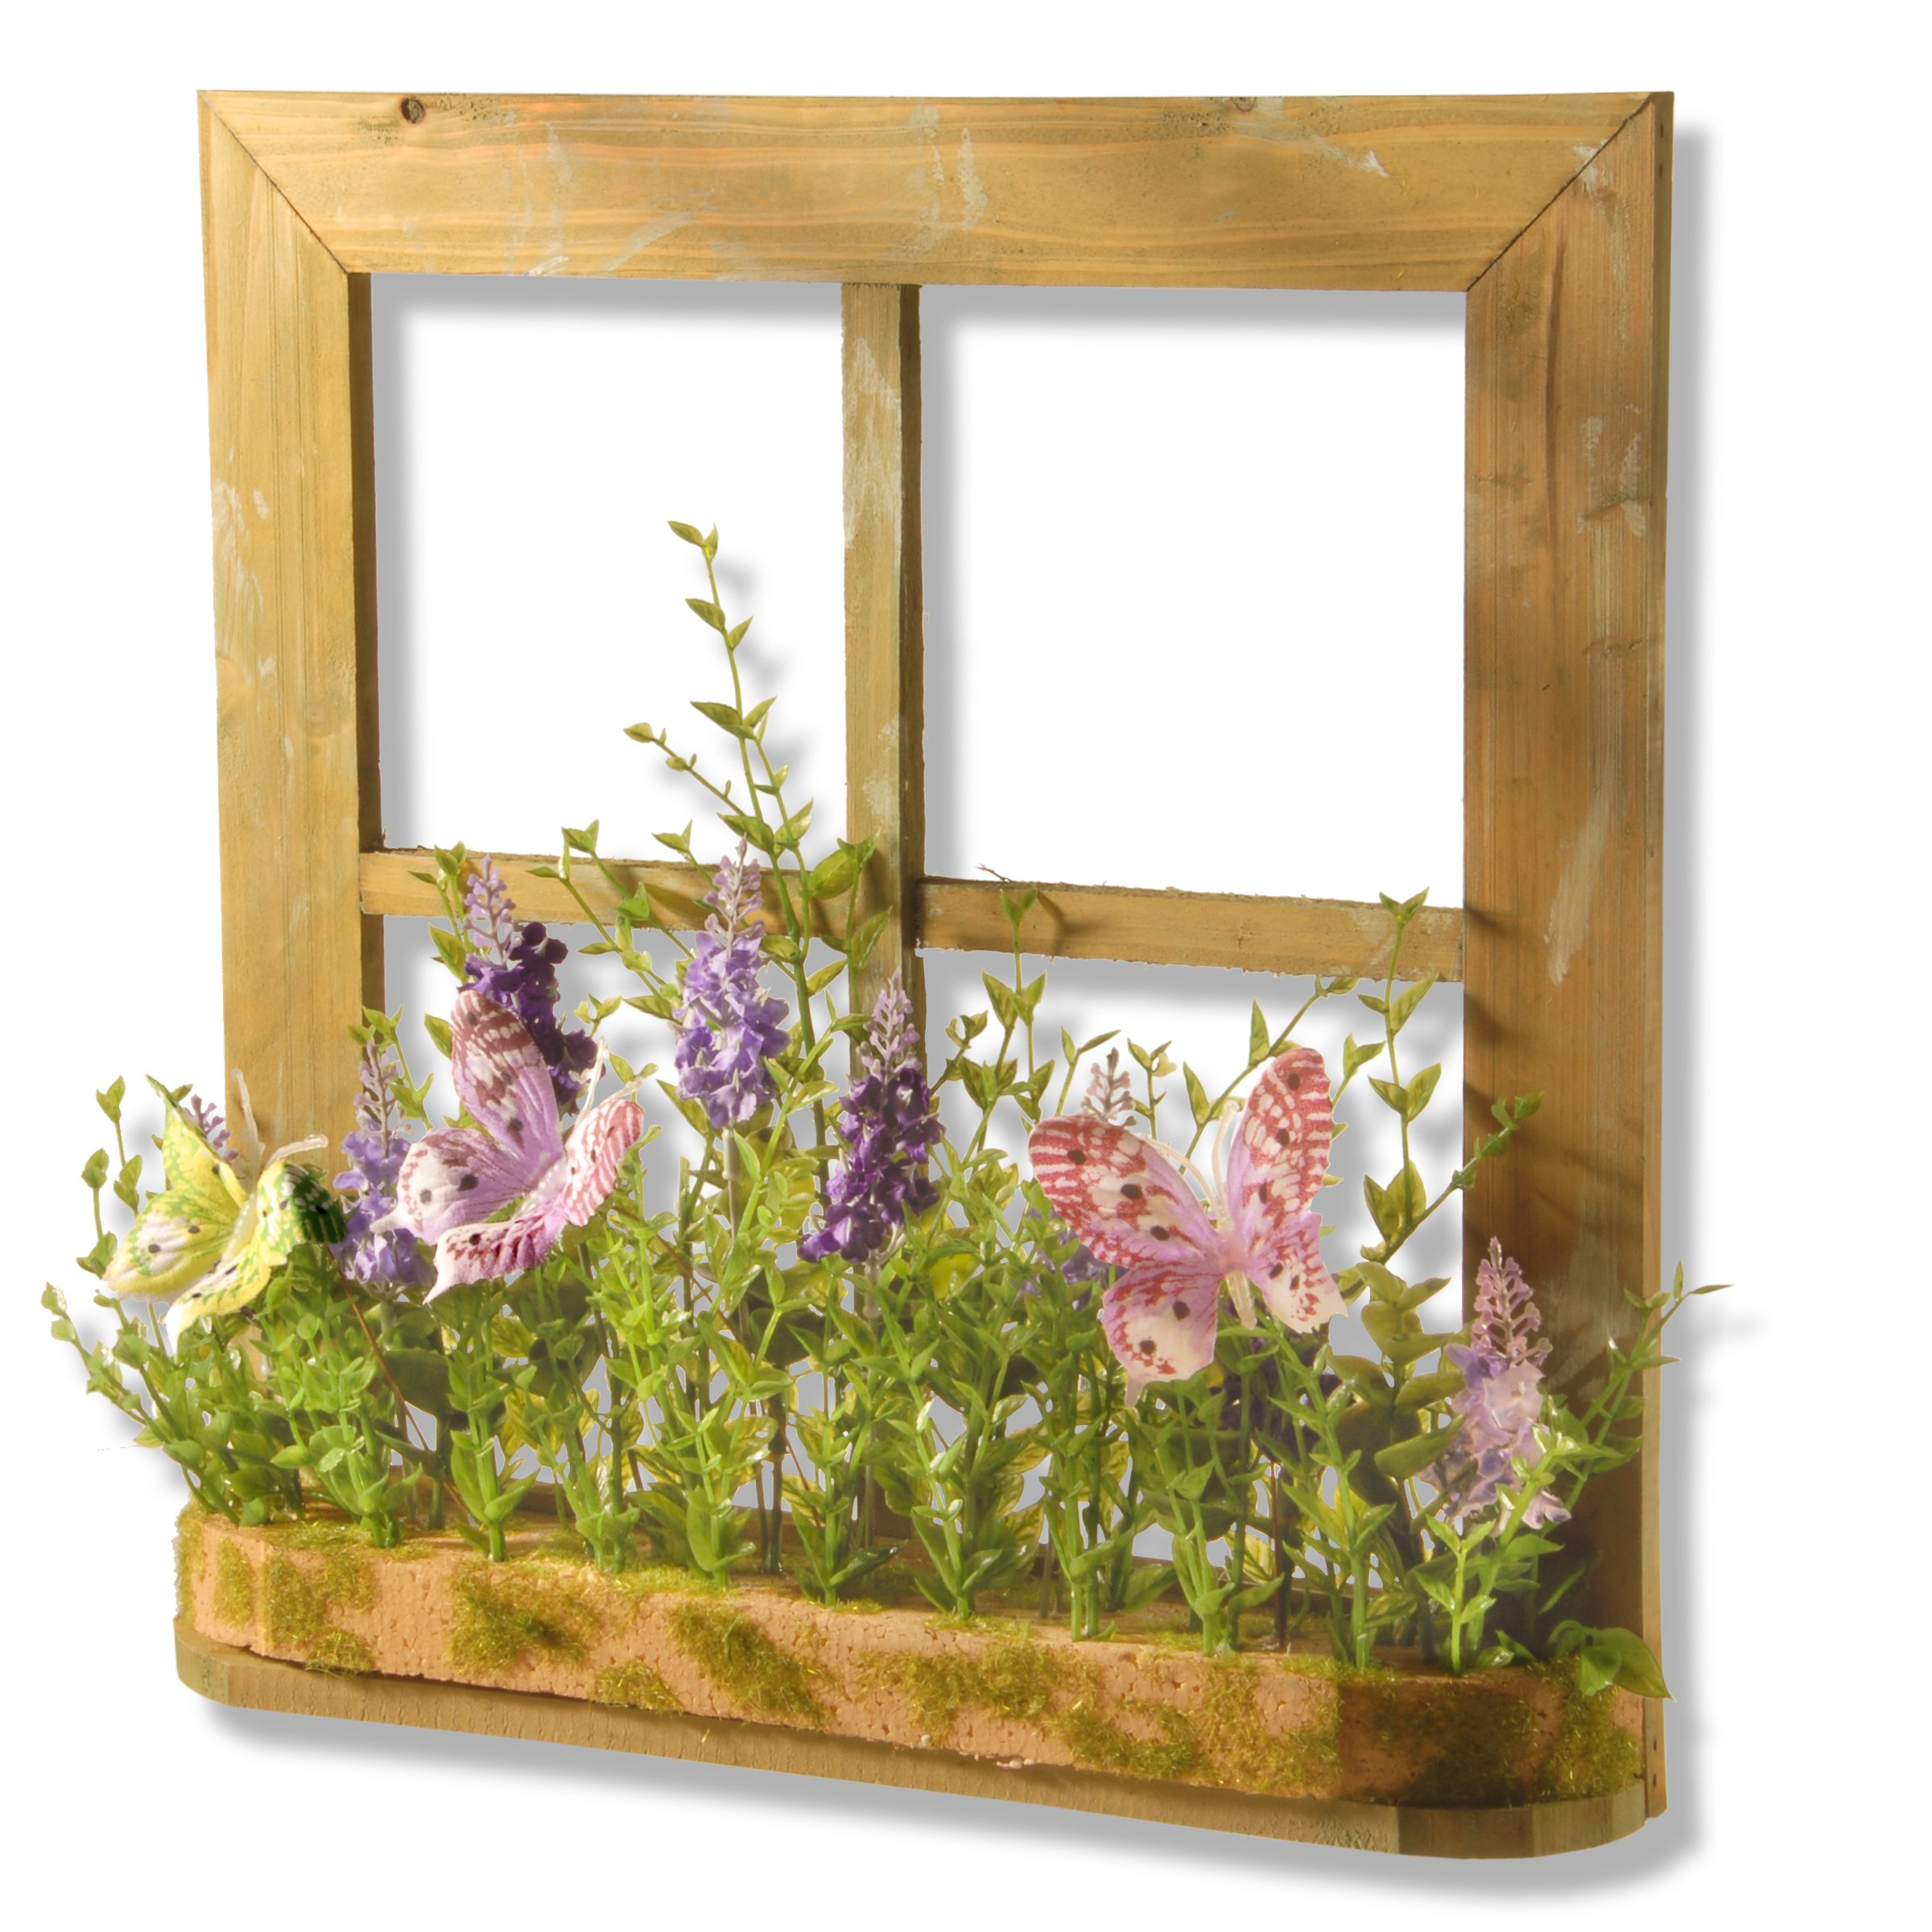 National Tree 14 Inch Square Window Frame Décor with Lavenders and Butterflies (RAS-15522CT)